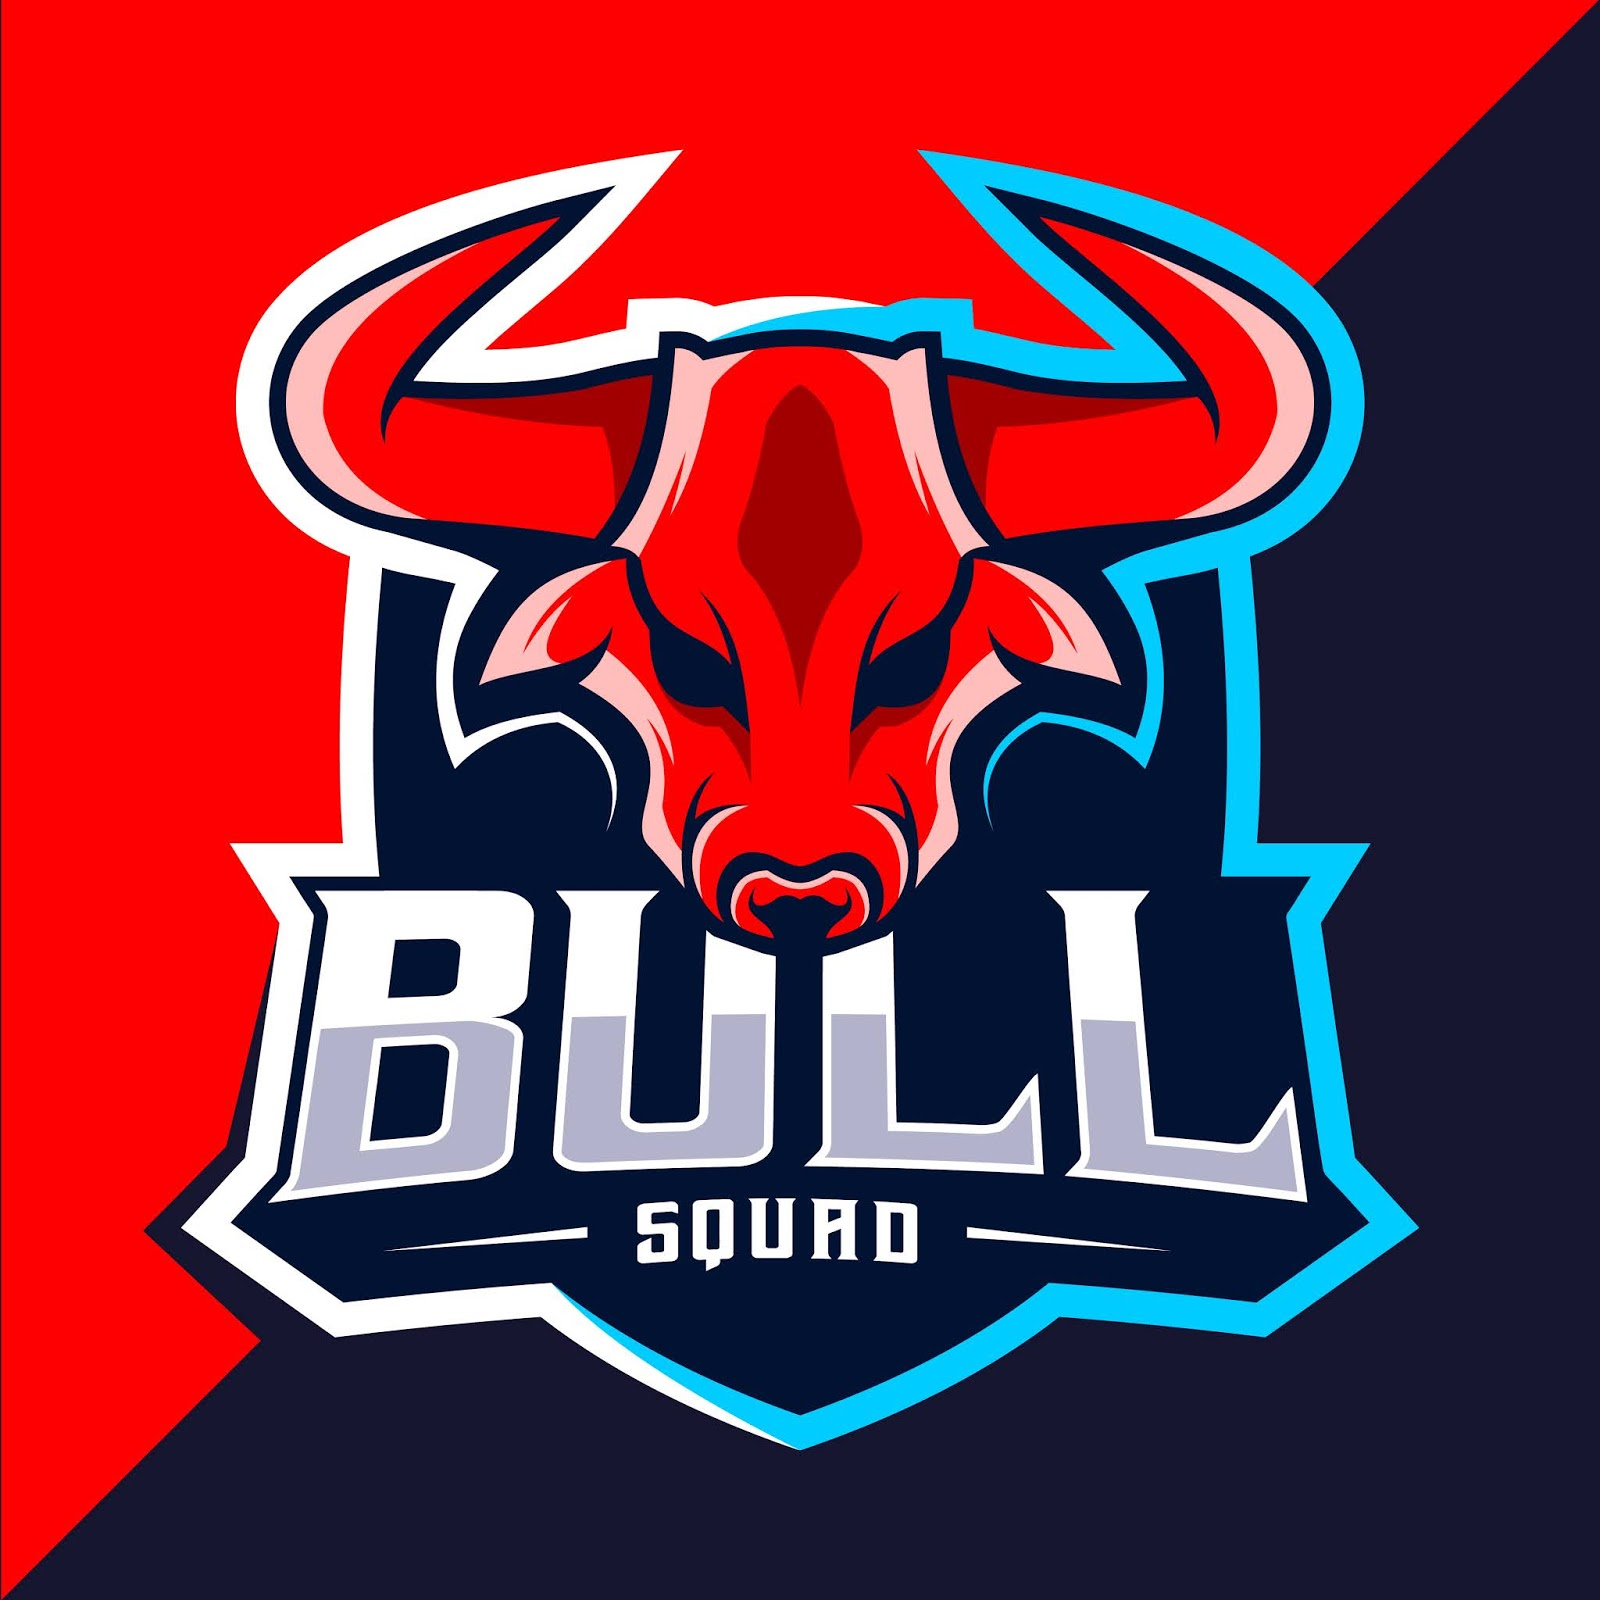 Bull Mascot Esport Logo Free Download Vector CDR, AI, EPS and PNG Formats